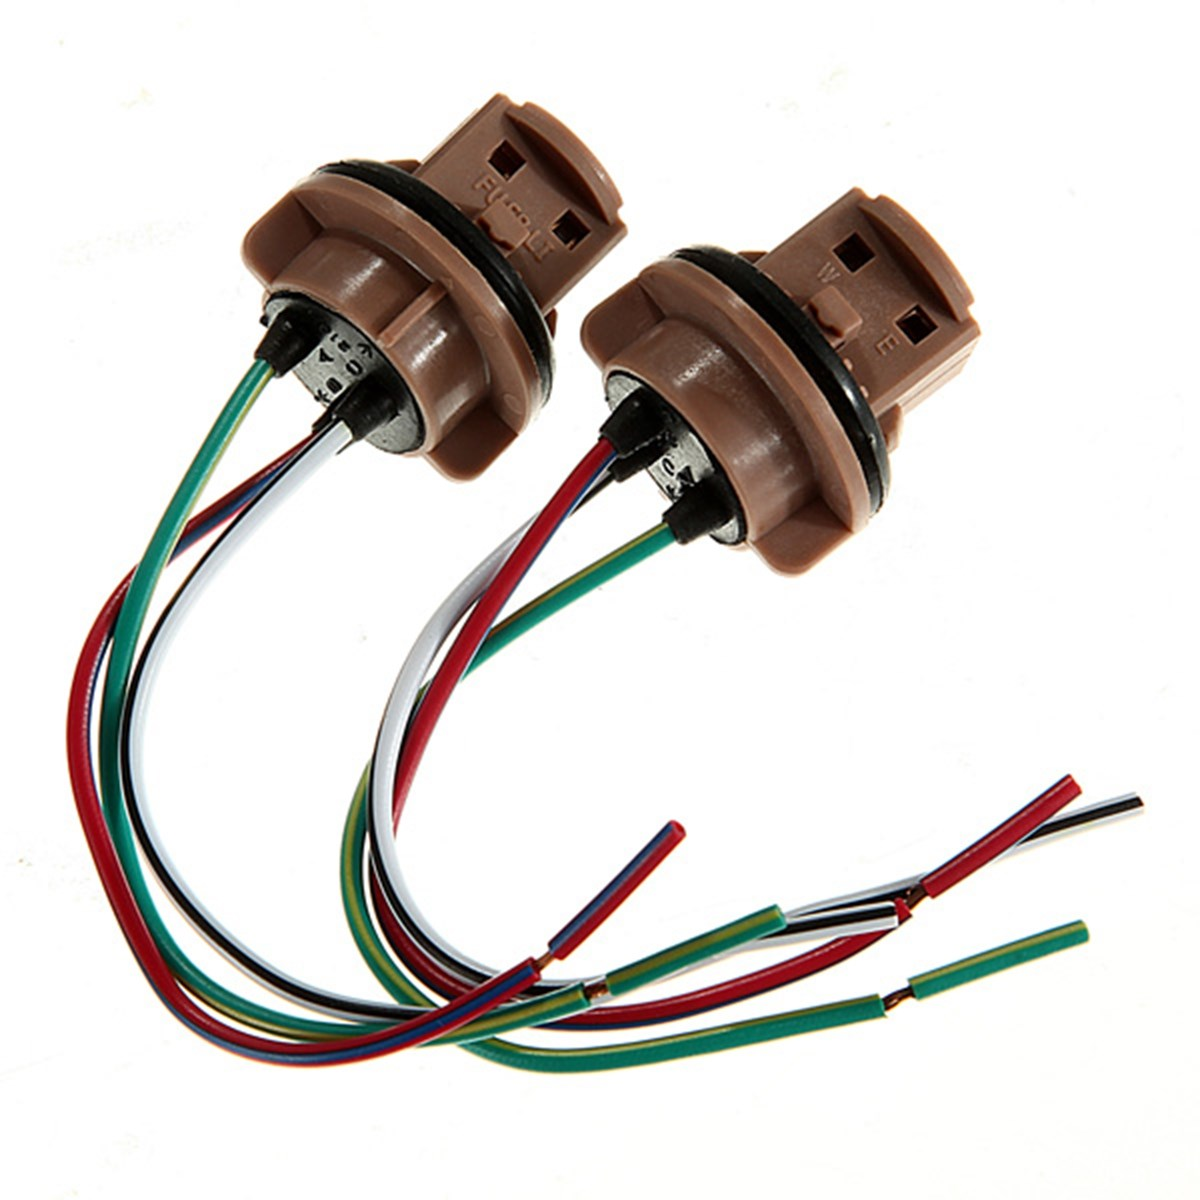 2x 7440 7443 T20 LED Lead Stereo Radio Wiring Harness Connector Socket Adaptor Brake Light Cable 2x 7440 7443 t20 led lead stereo radio wiring harness connector Wiring Harness Diagram at n-0.co